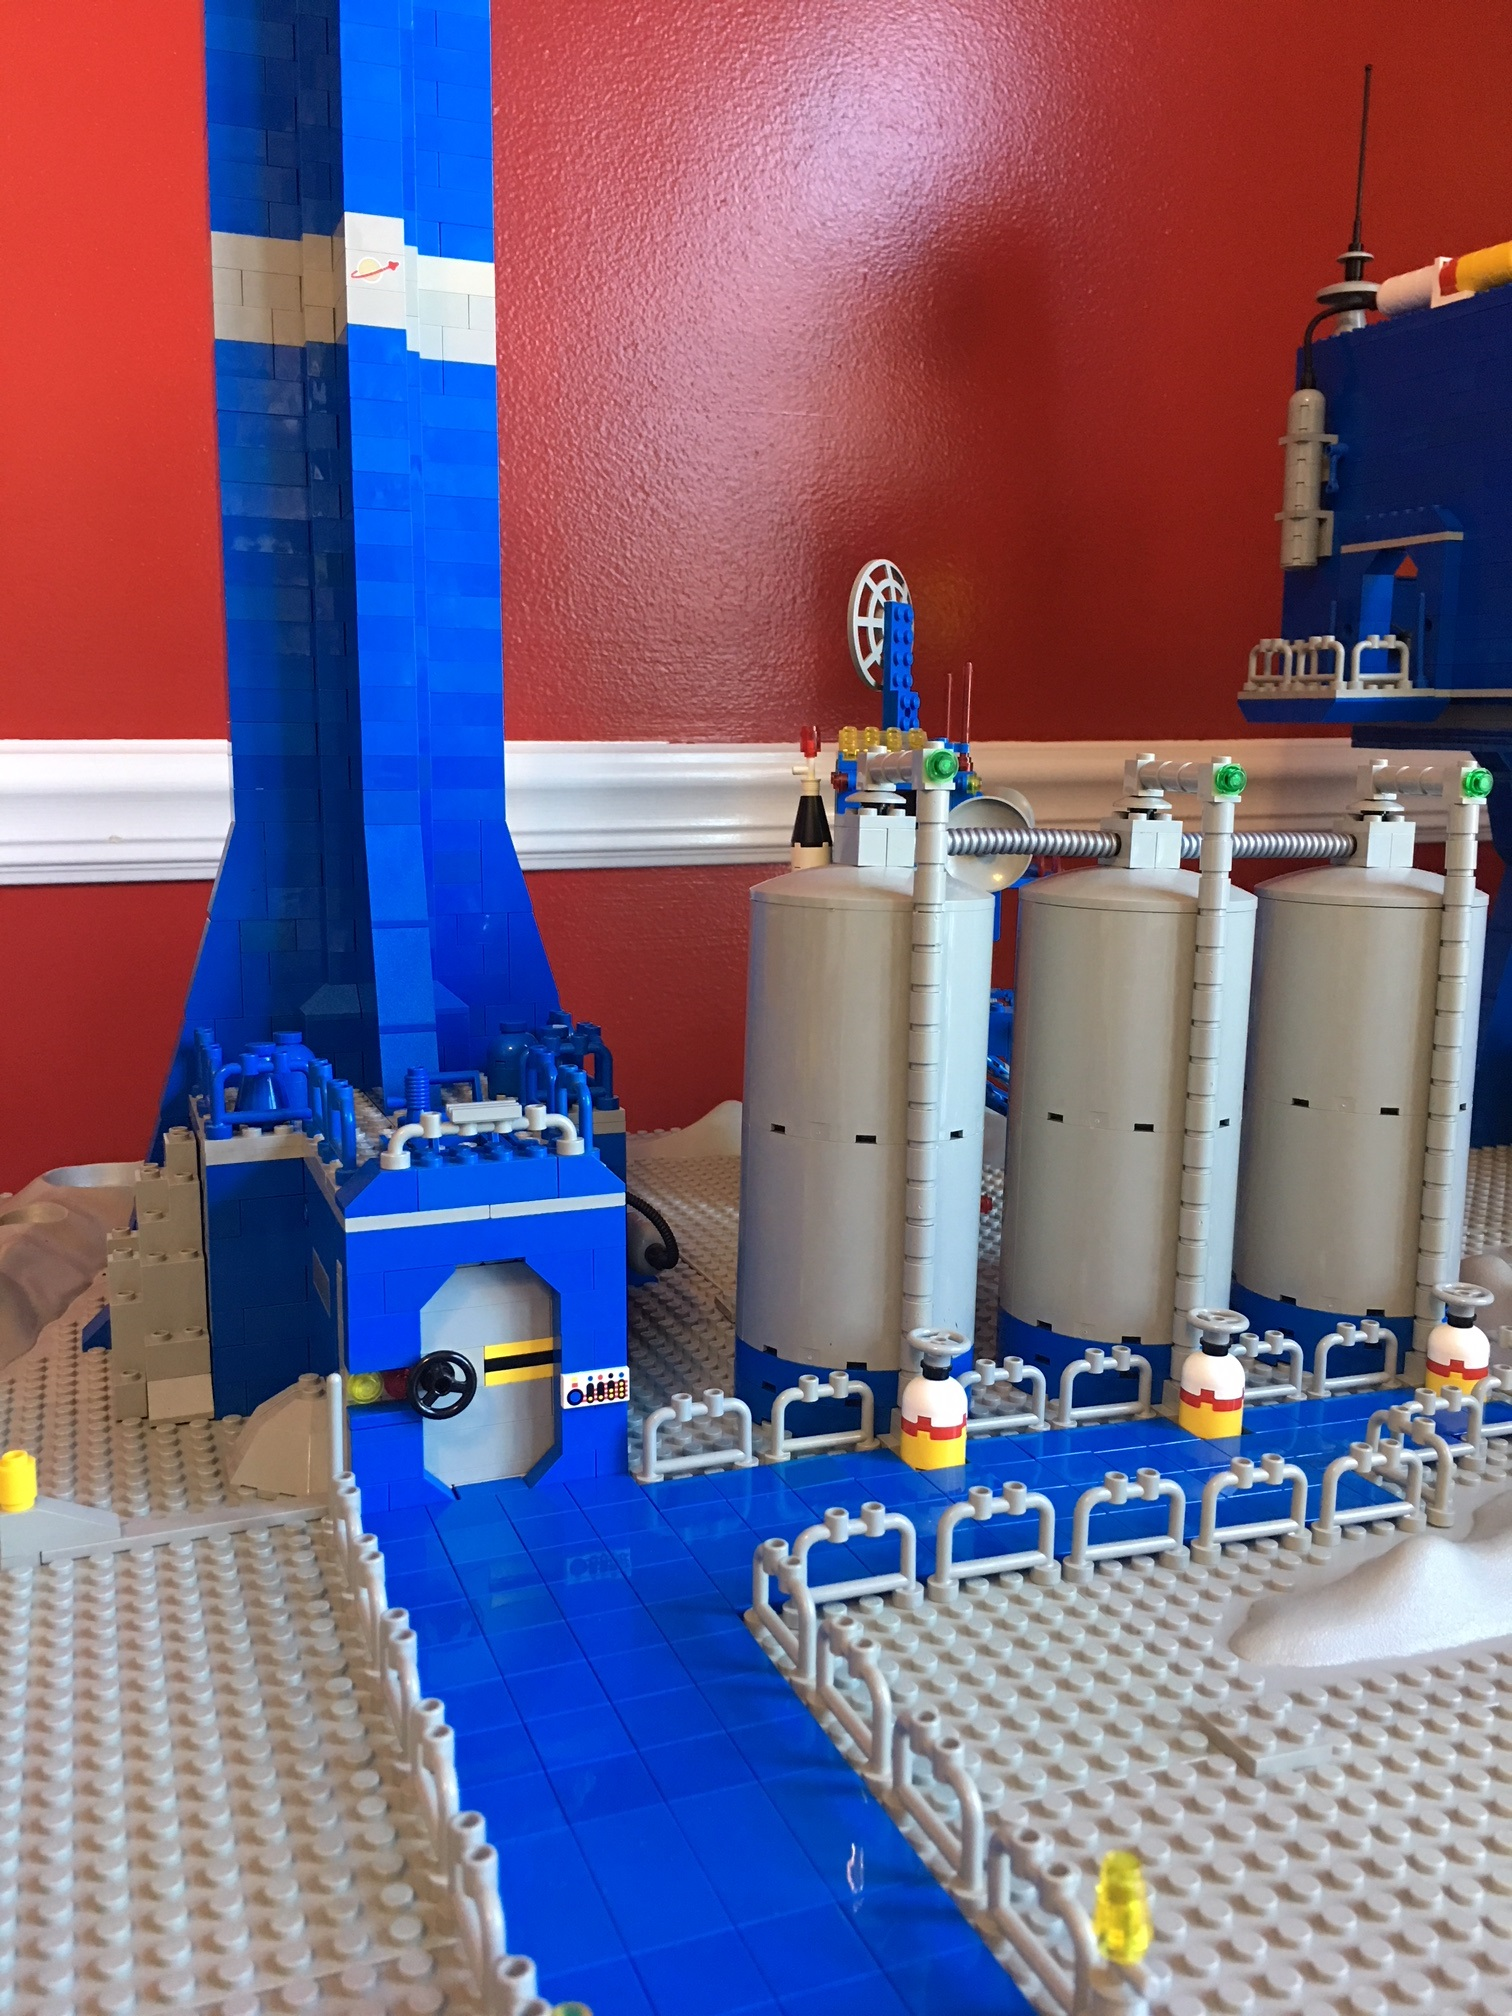 blue_tower_base_1.jpg